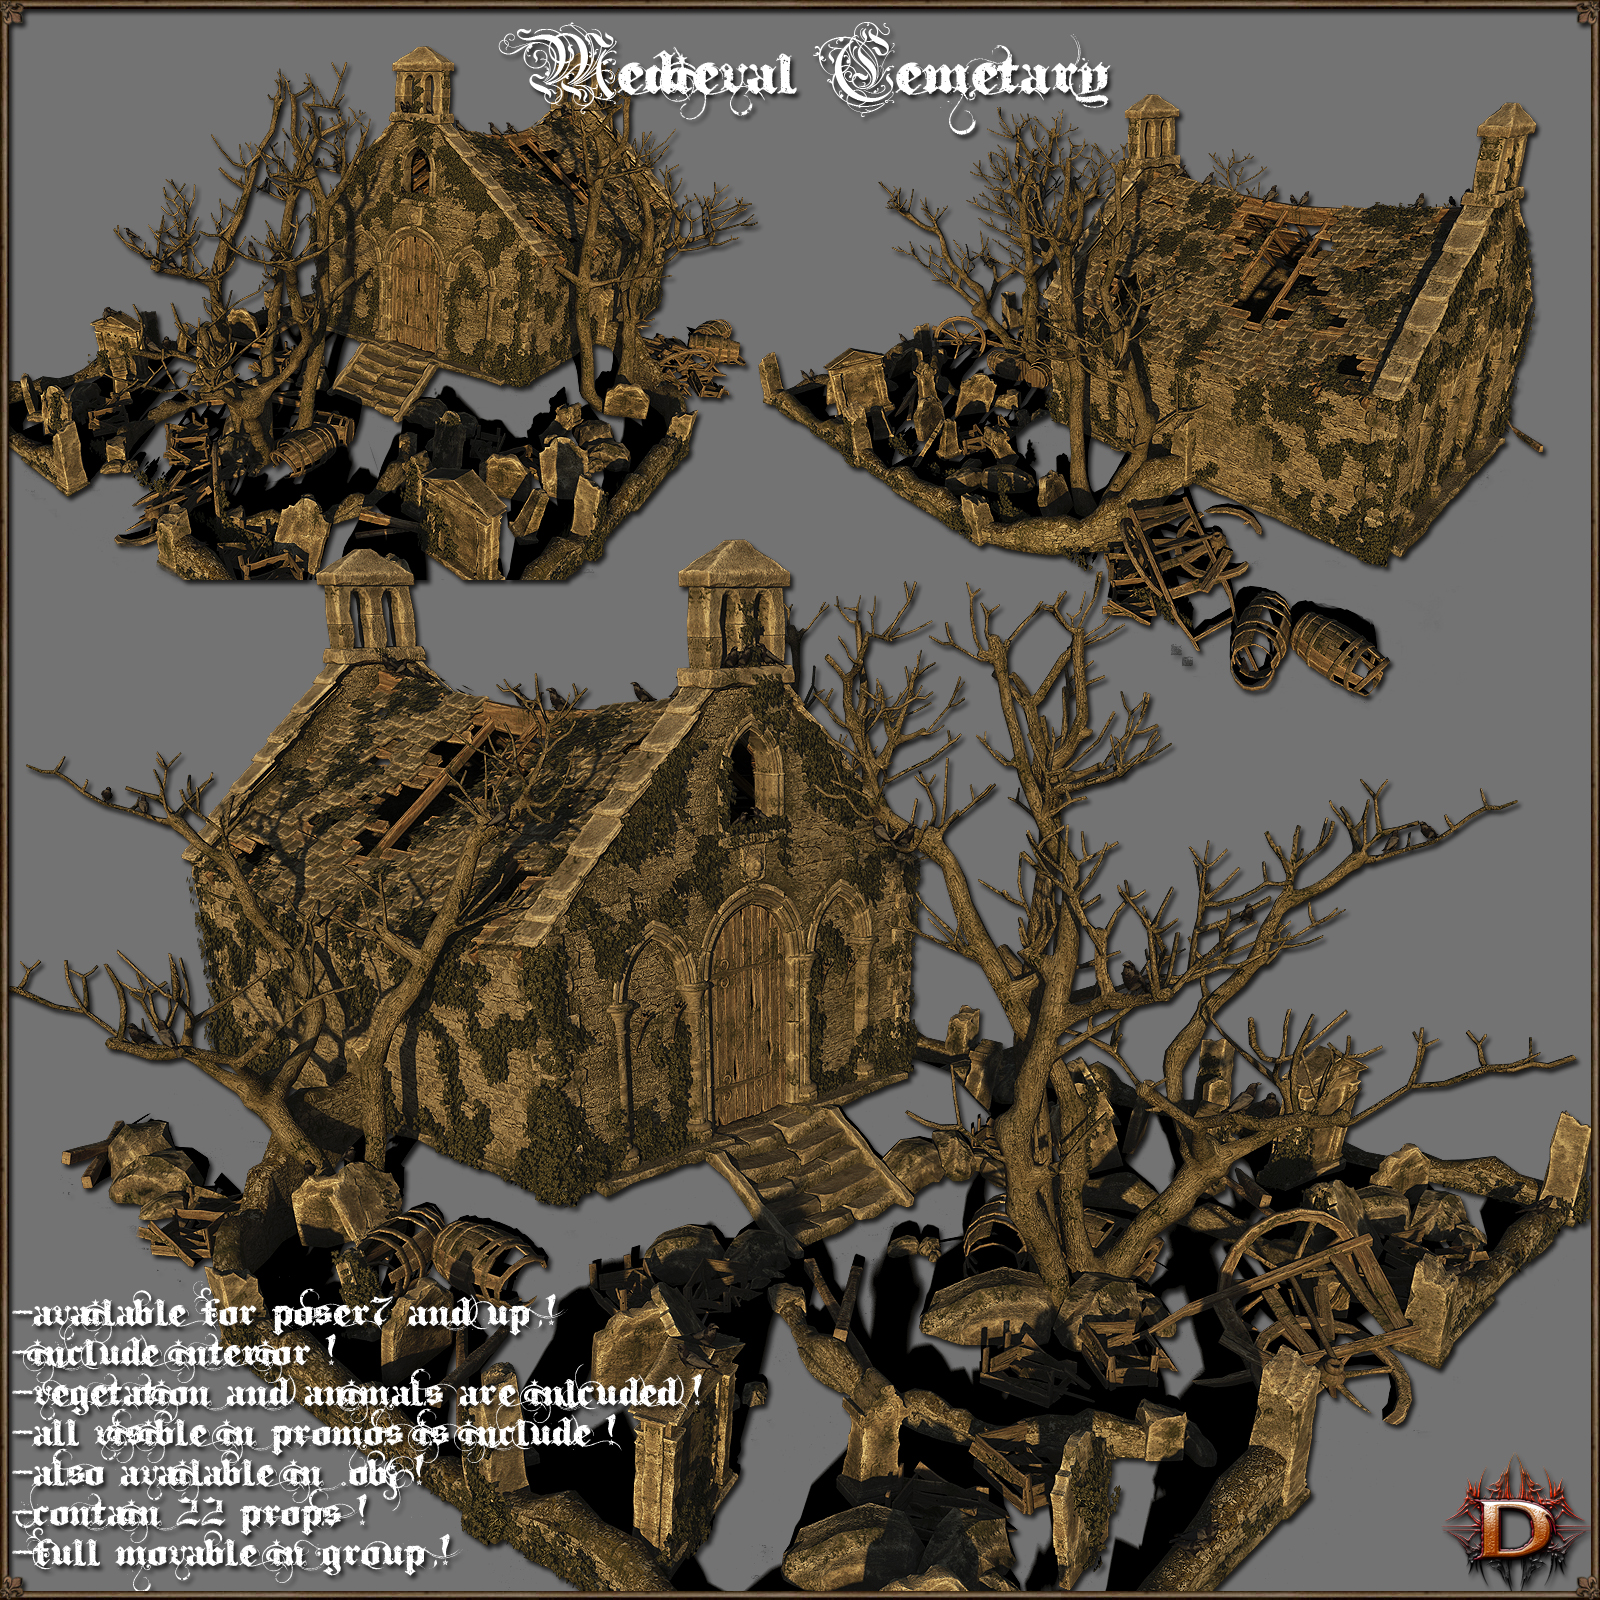 Medieval Cemetary - Extended License